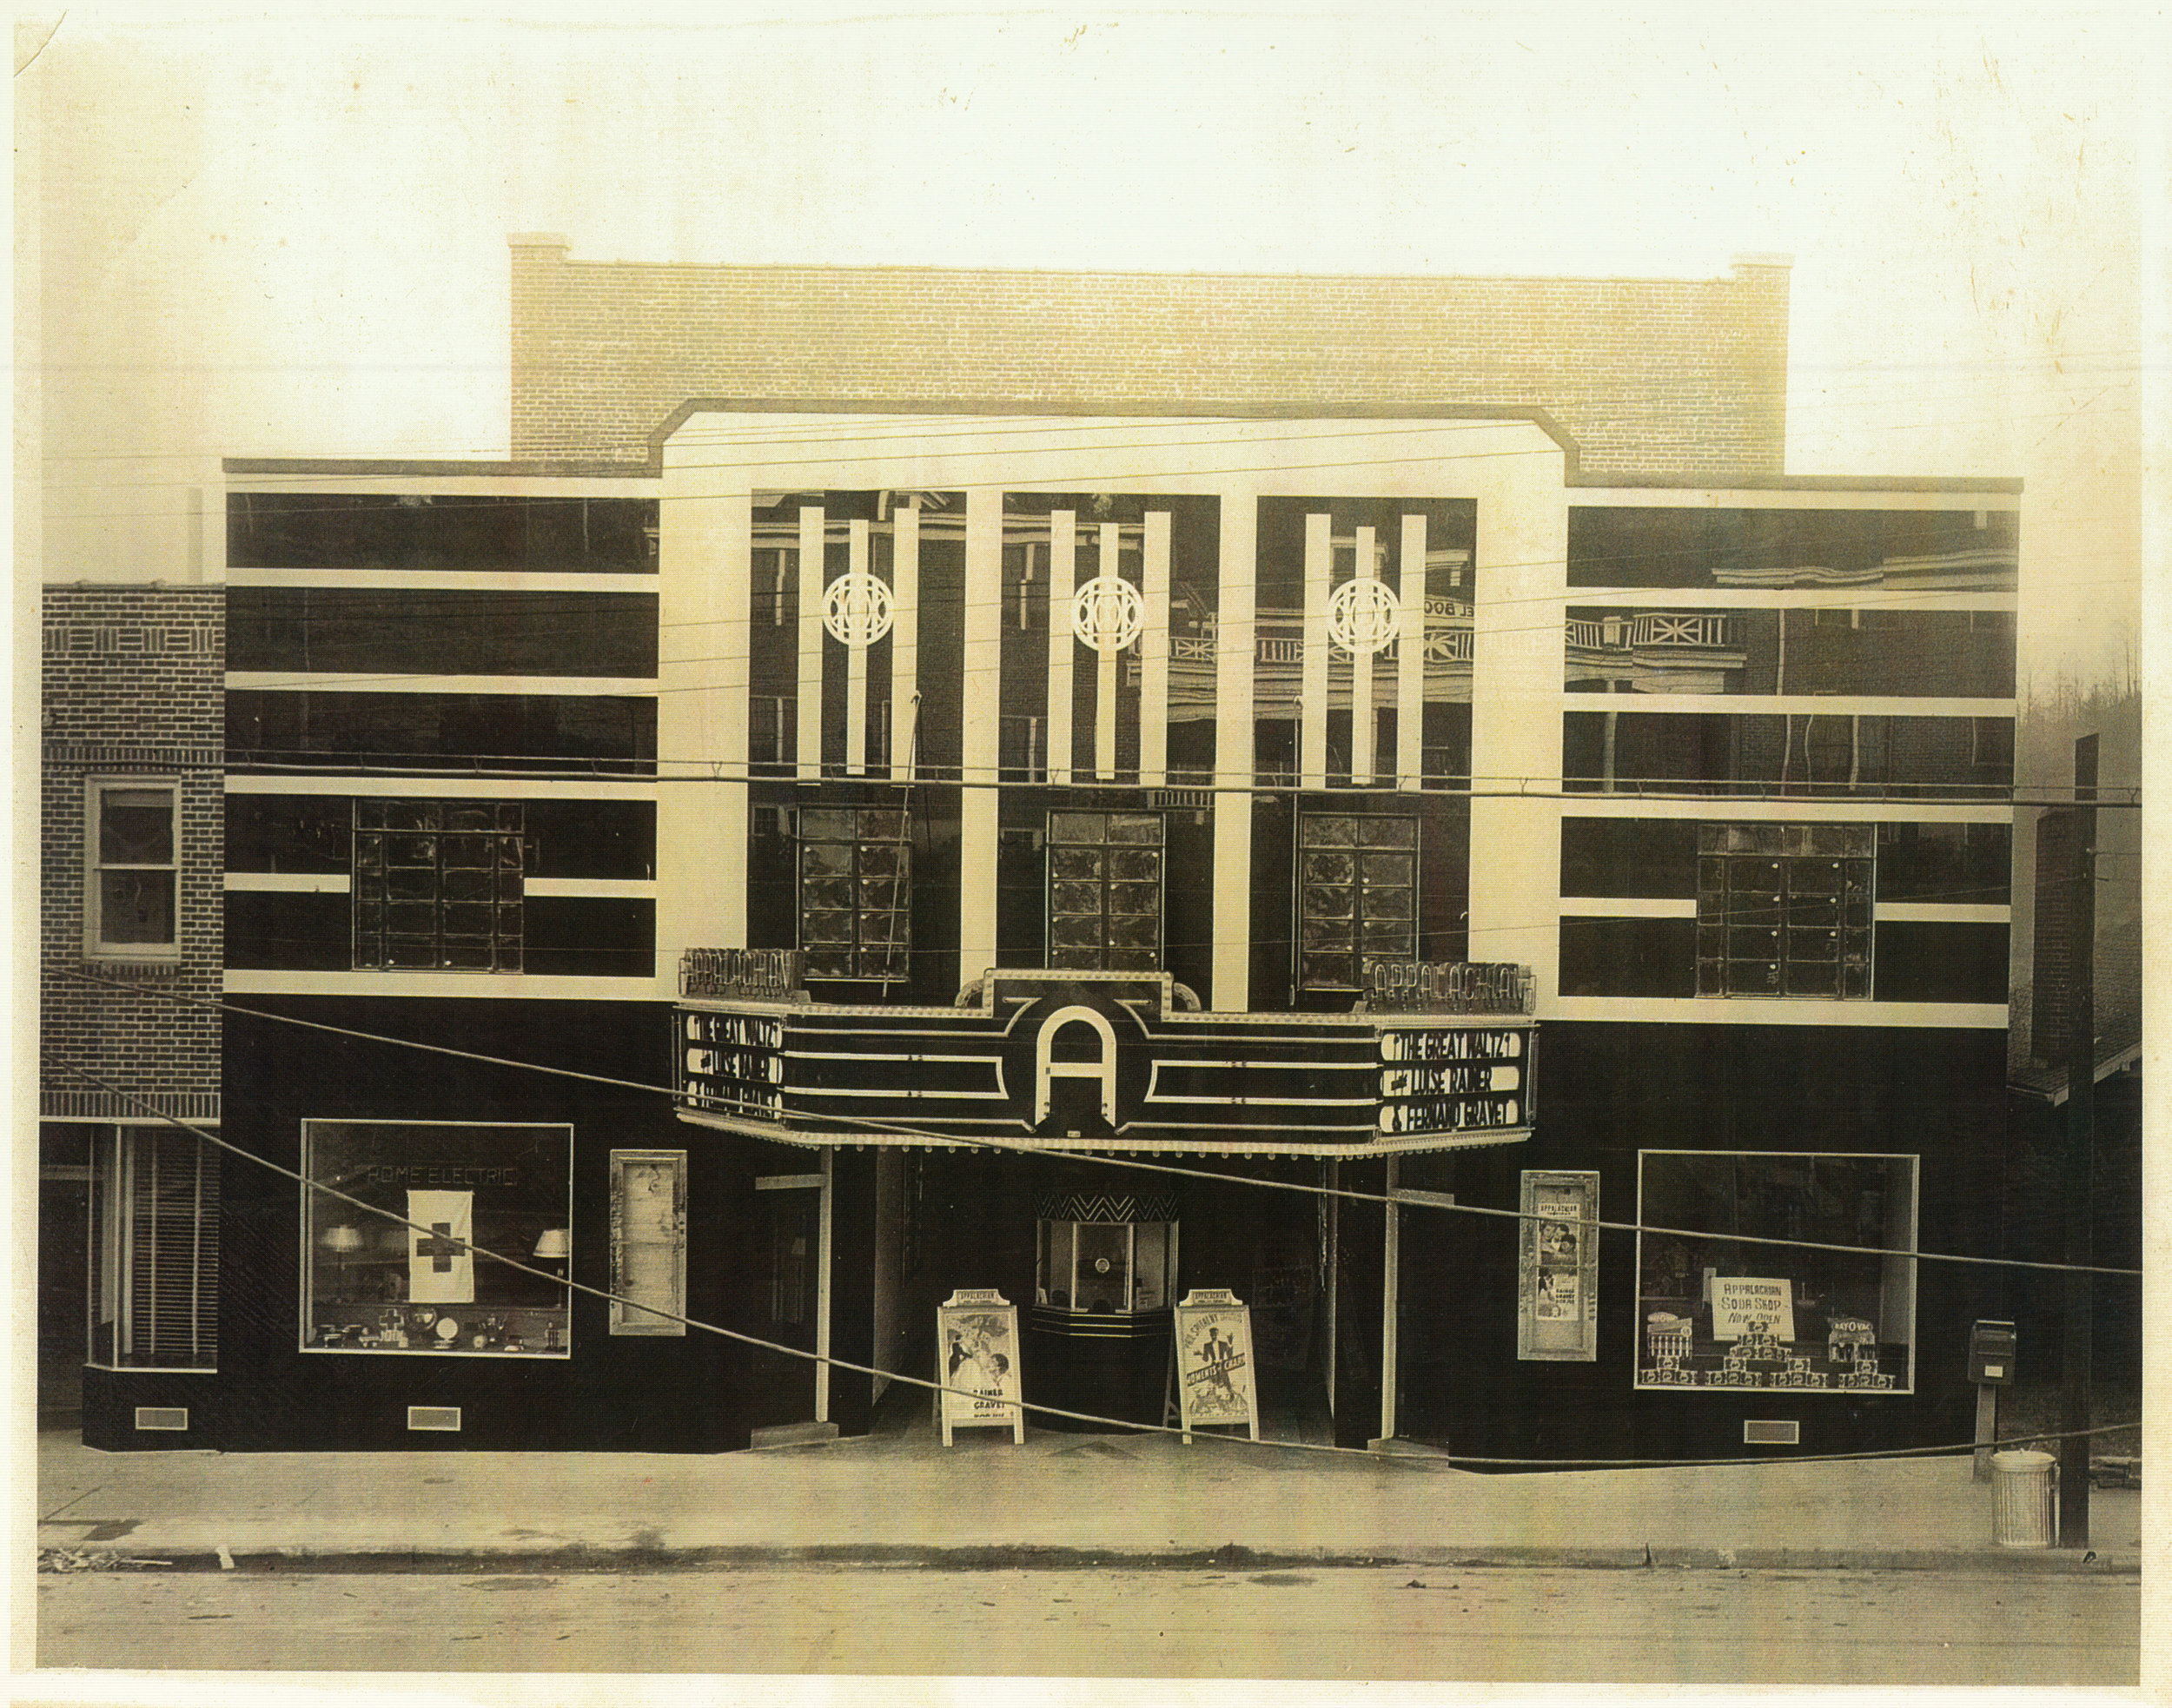 Appalachian Theatre, November 1938